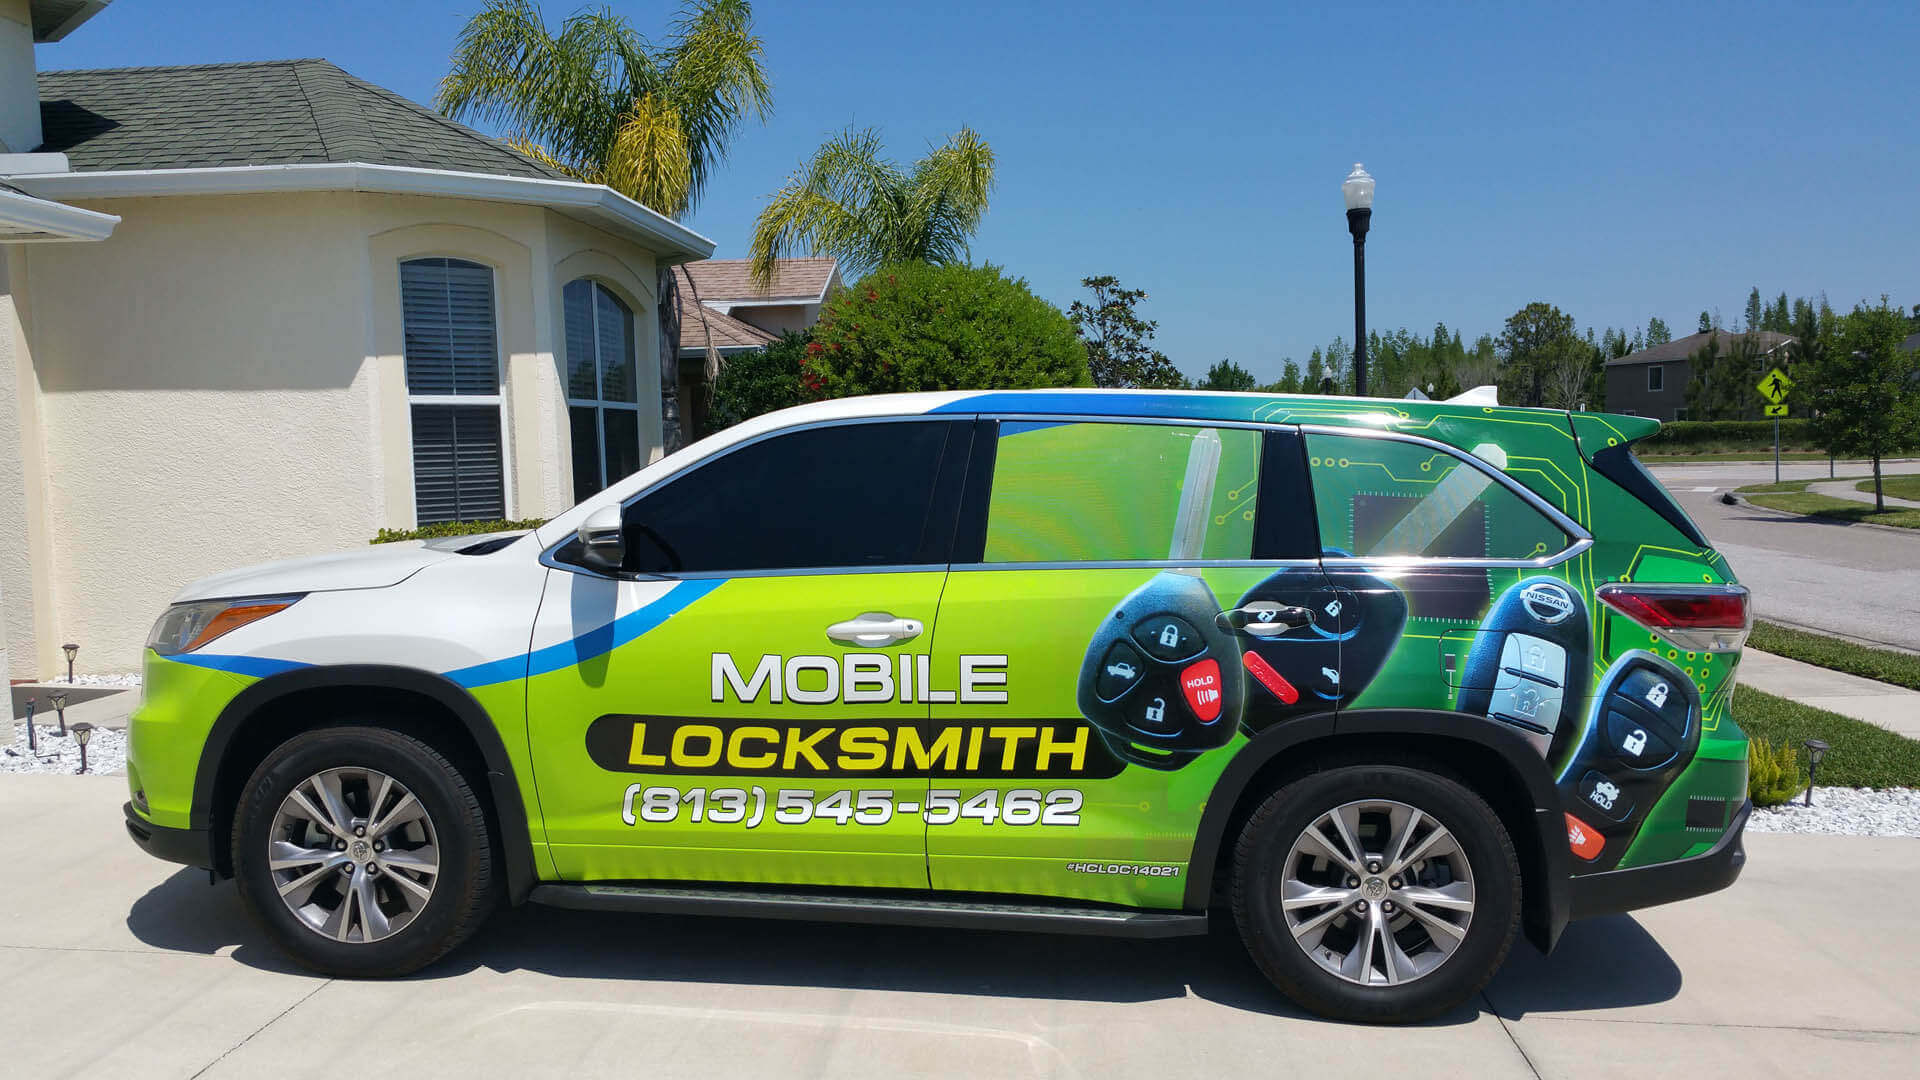 Cheap Lock & Key mobile locksmith in front a a home in Tampa, FL.